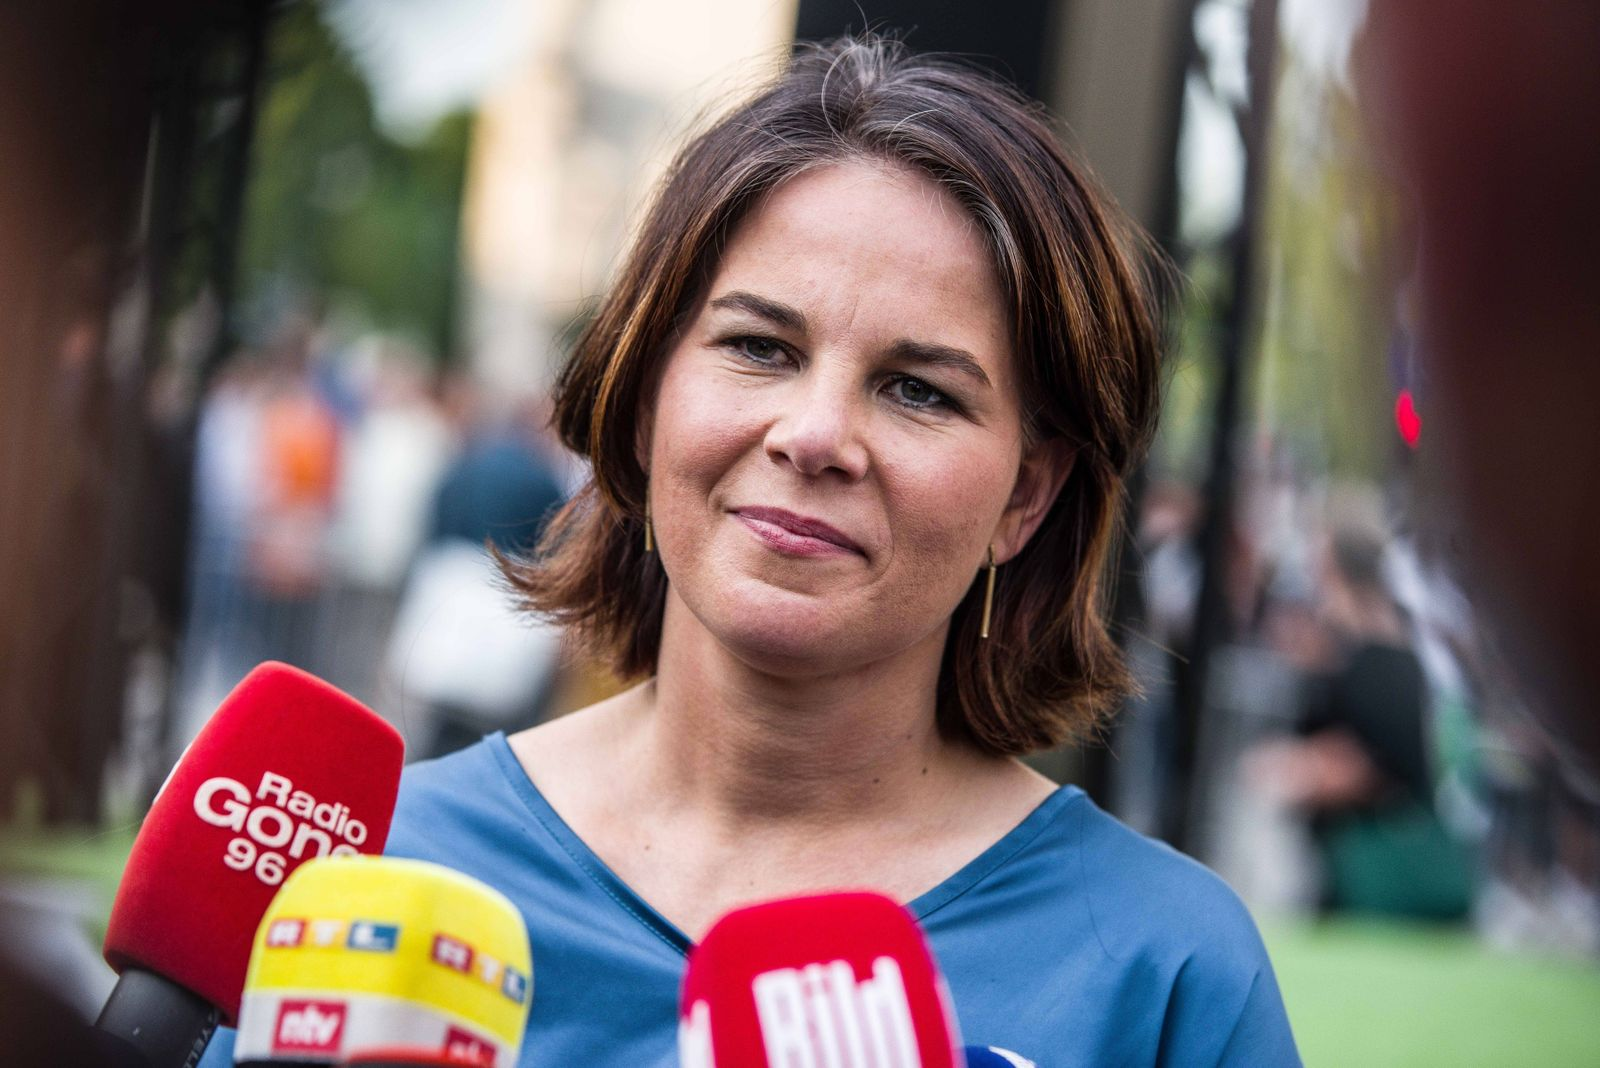 September 9, 2021, Munich, Bavaria, Germany: The Green candidate for Chancellor of Germany Annalena Baerbock during a p